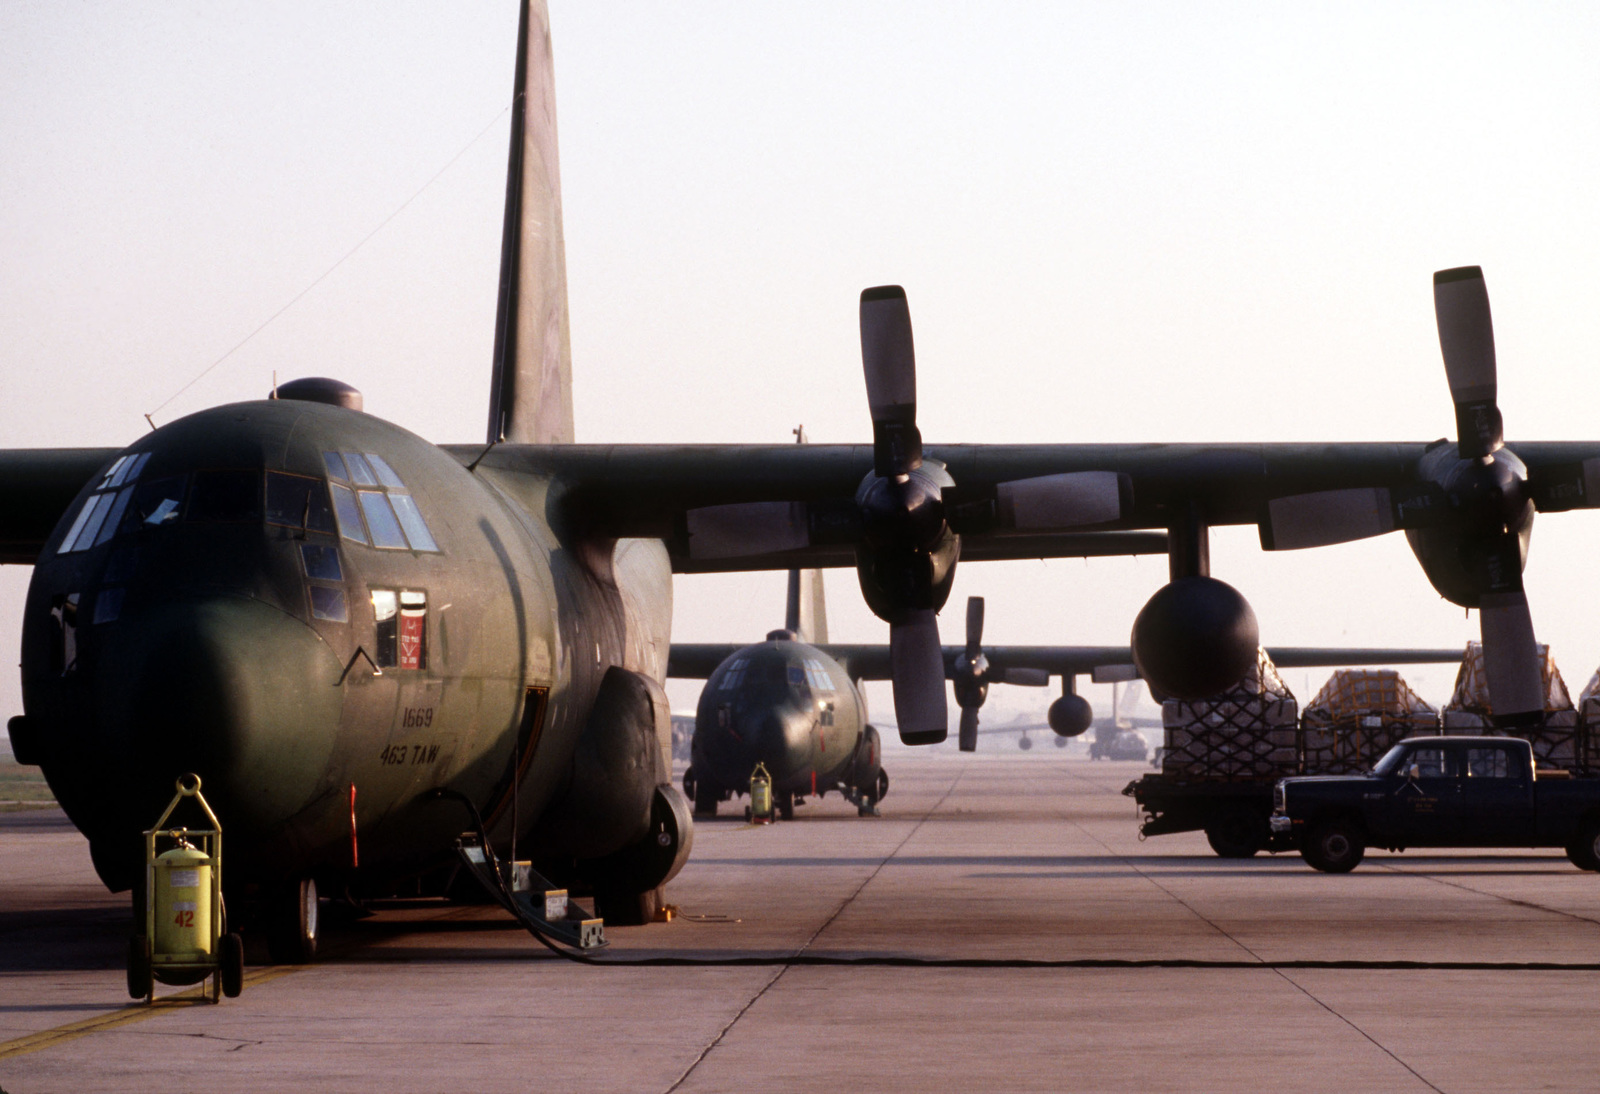 A C-130E Hercules aircraft from the 463rd Tactical Airlift Wing is